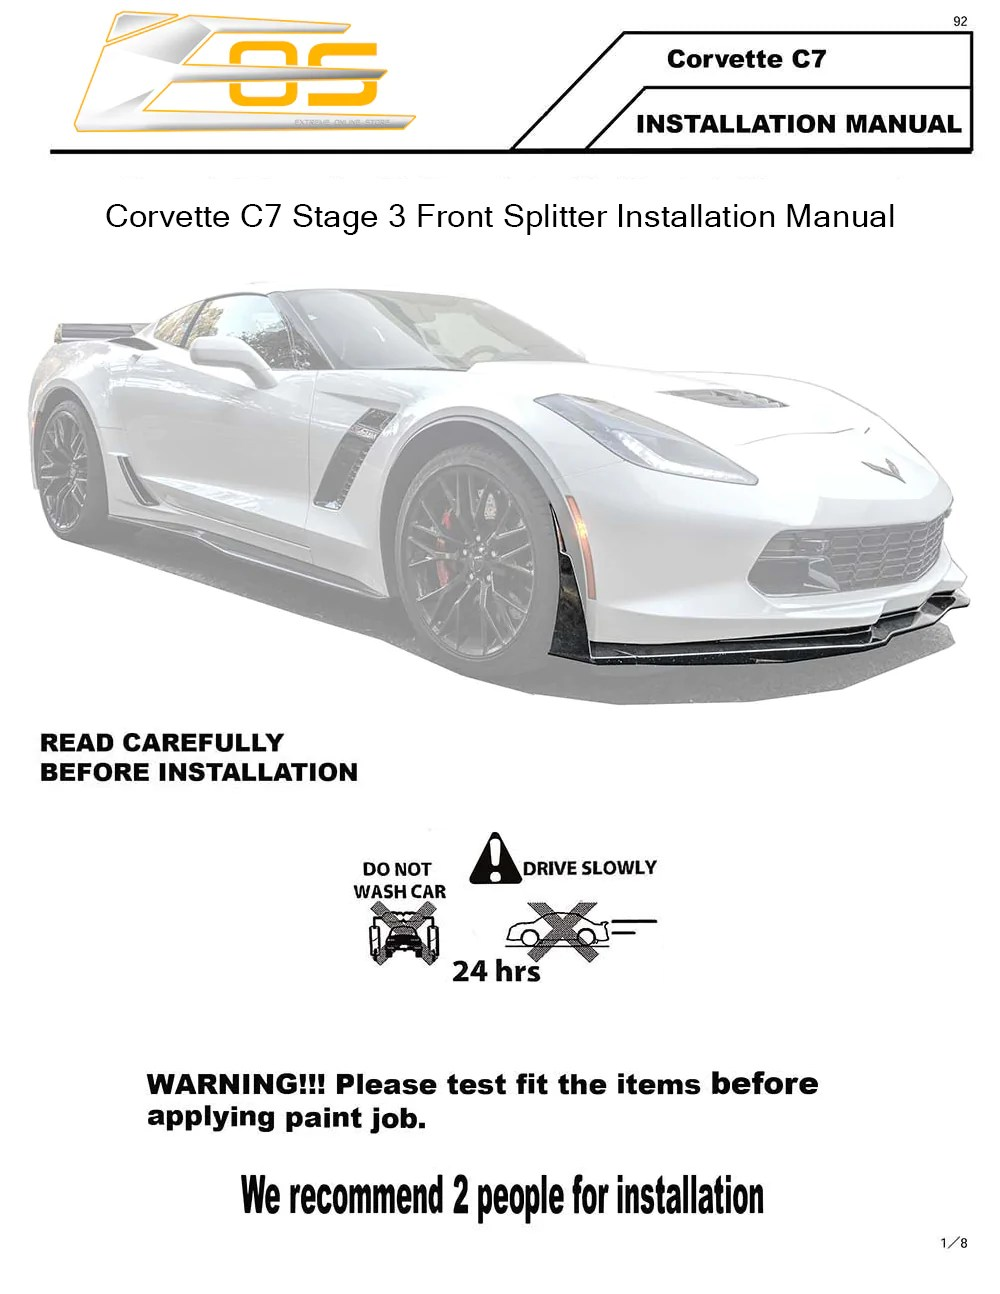 small resolution of corvette c7 stage 3 front splitter installation instruction